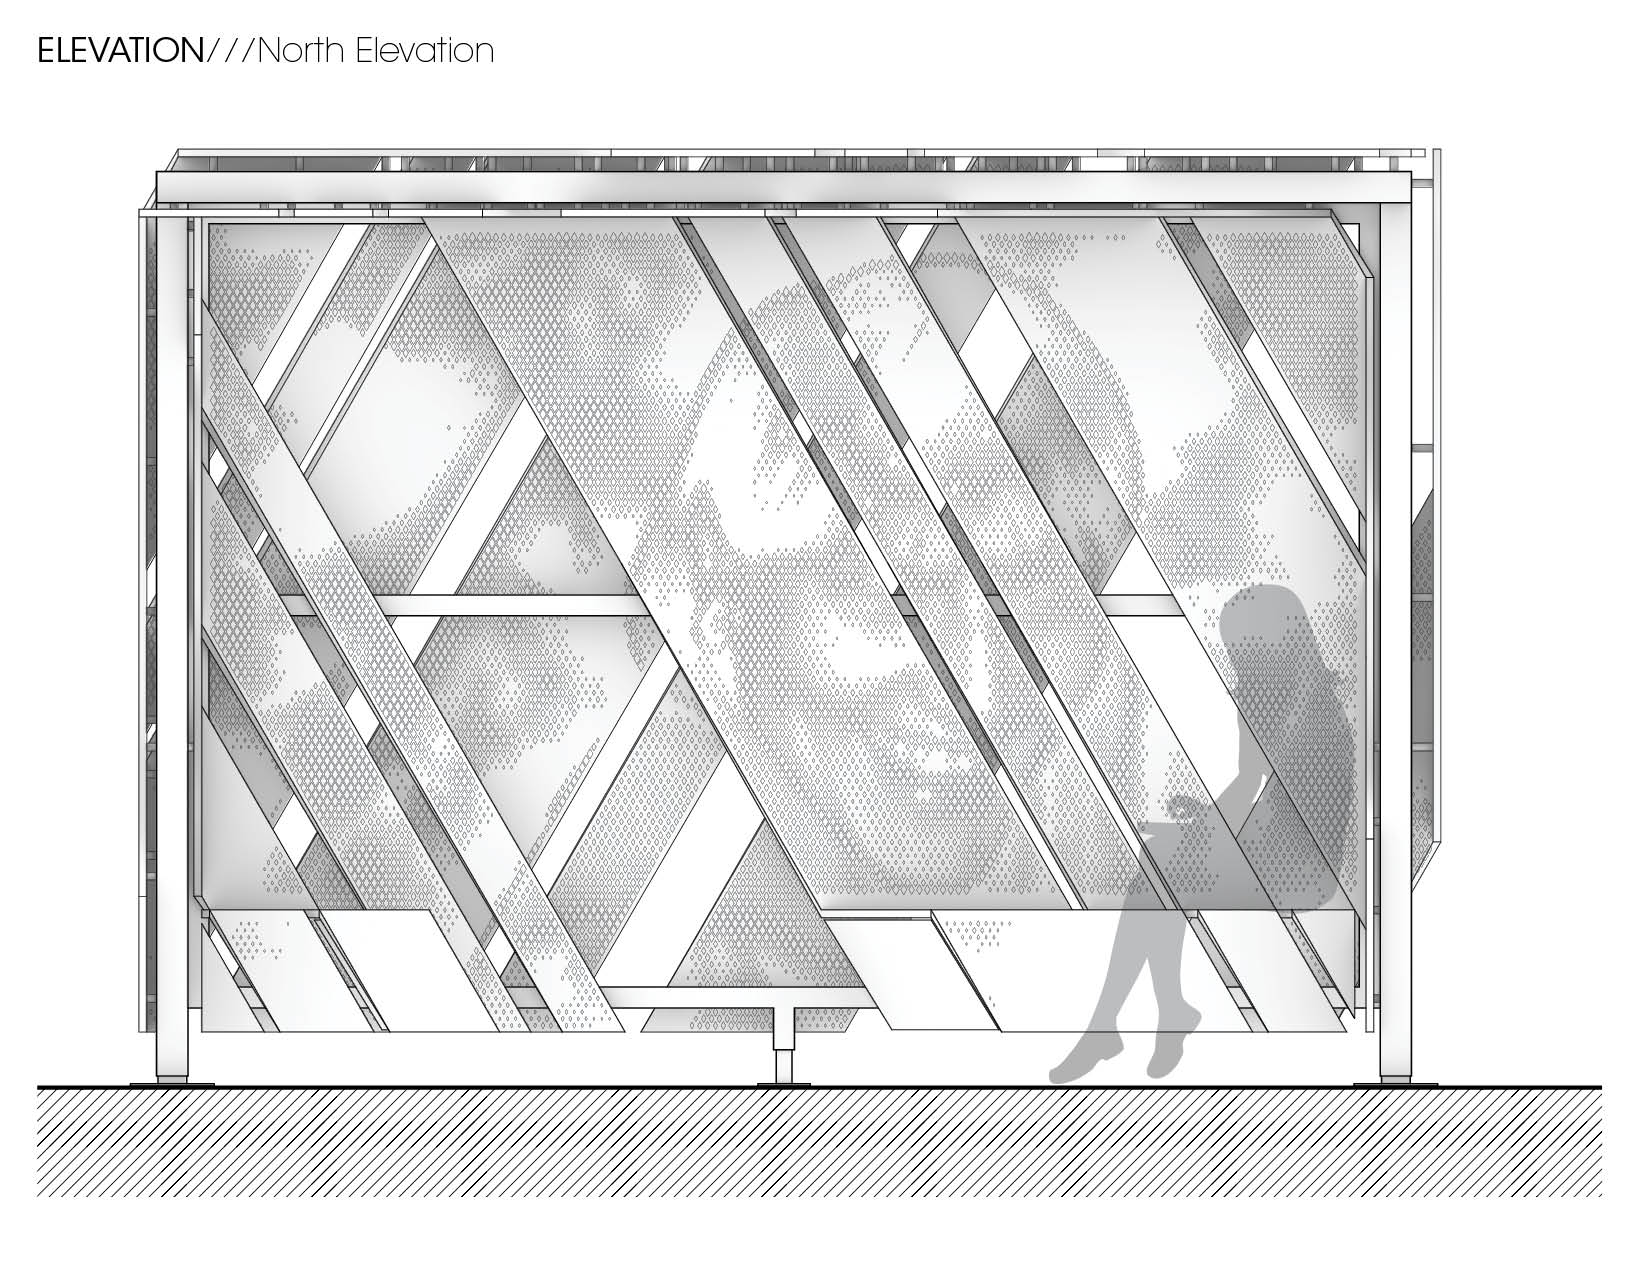 Asteriskos-Design-Digital-Fabrication-Mary-O'Connor-Memorial-Transit-Shelter-Architekton-Tempe-Drawing.jpg